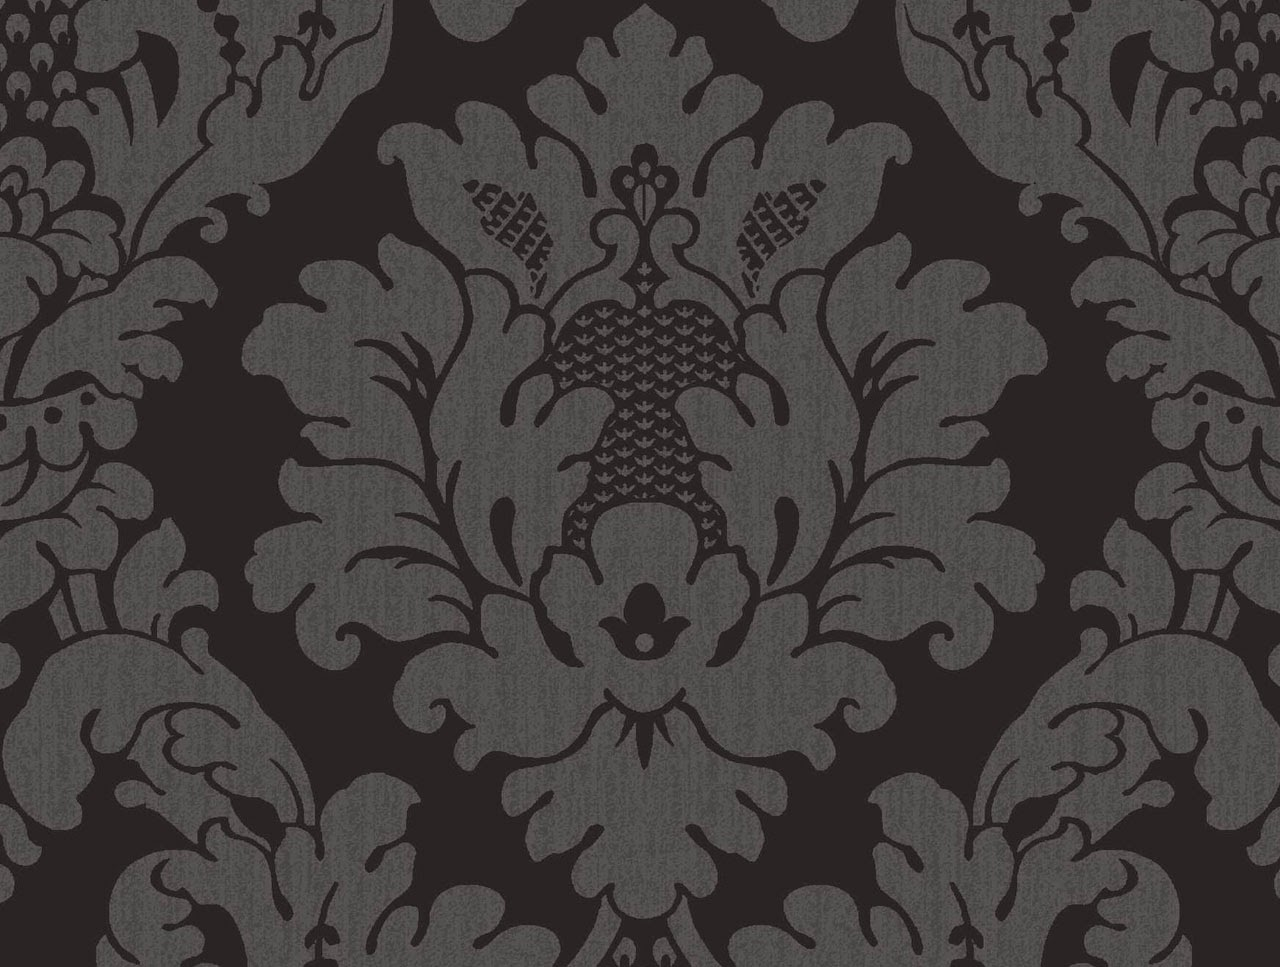 Black Damask Wallpaper ~ WallpaperYork   Brows your wallpaper here   Best quality wallpapers